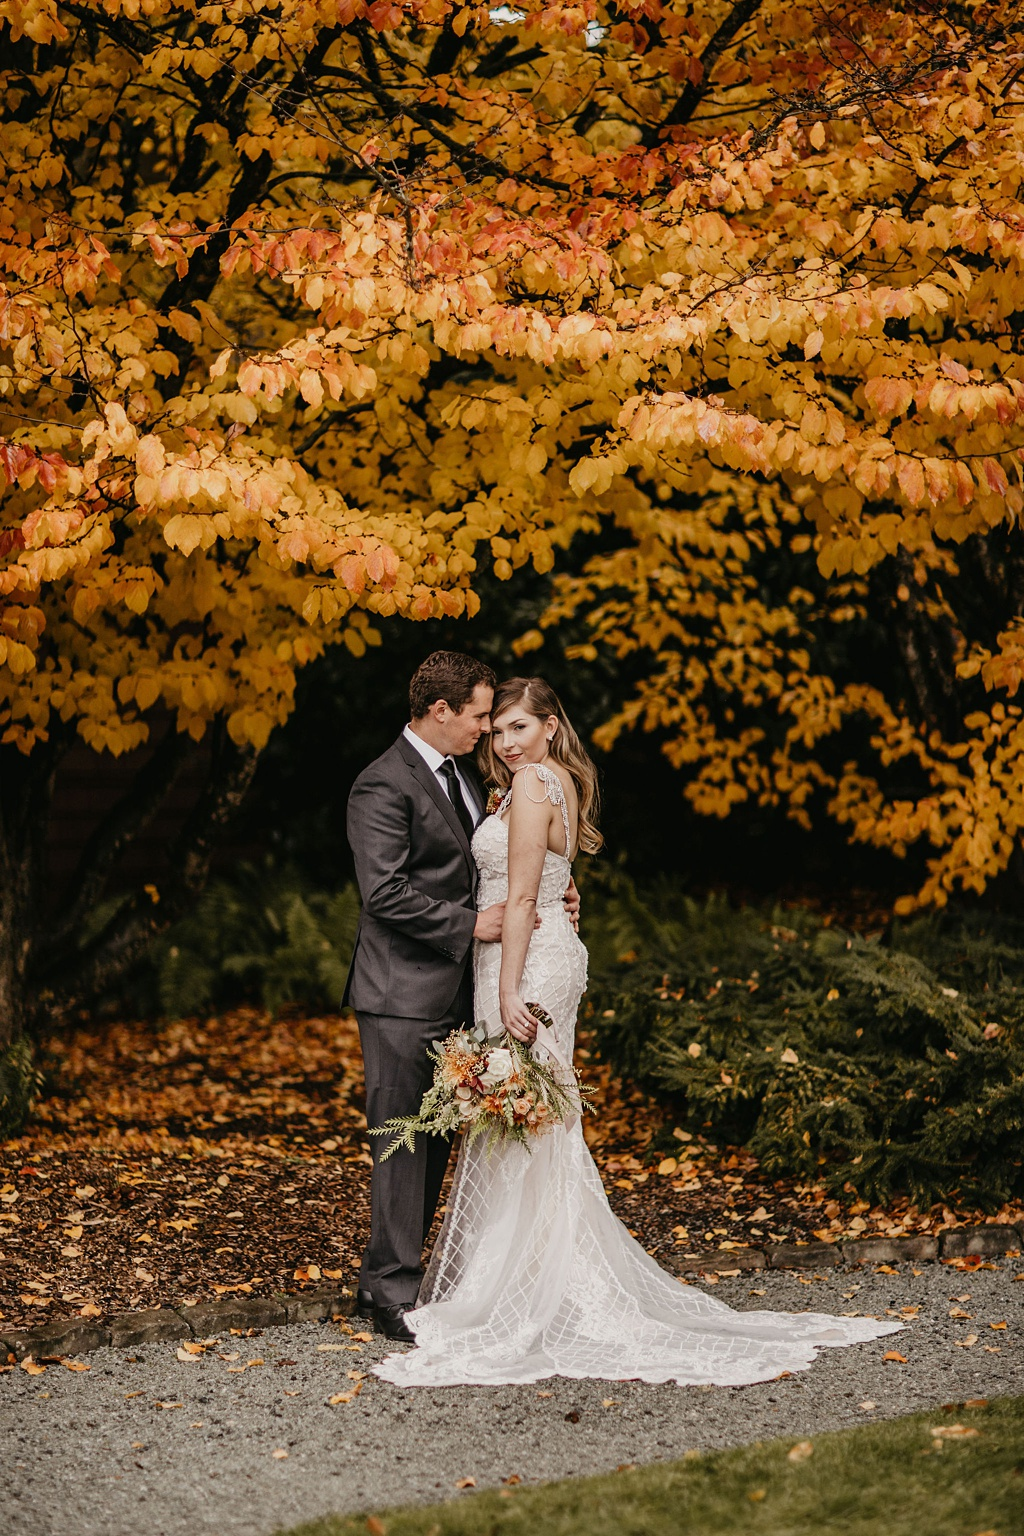 a bride and groom standing under a tree with bright yellow fall leaves